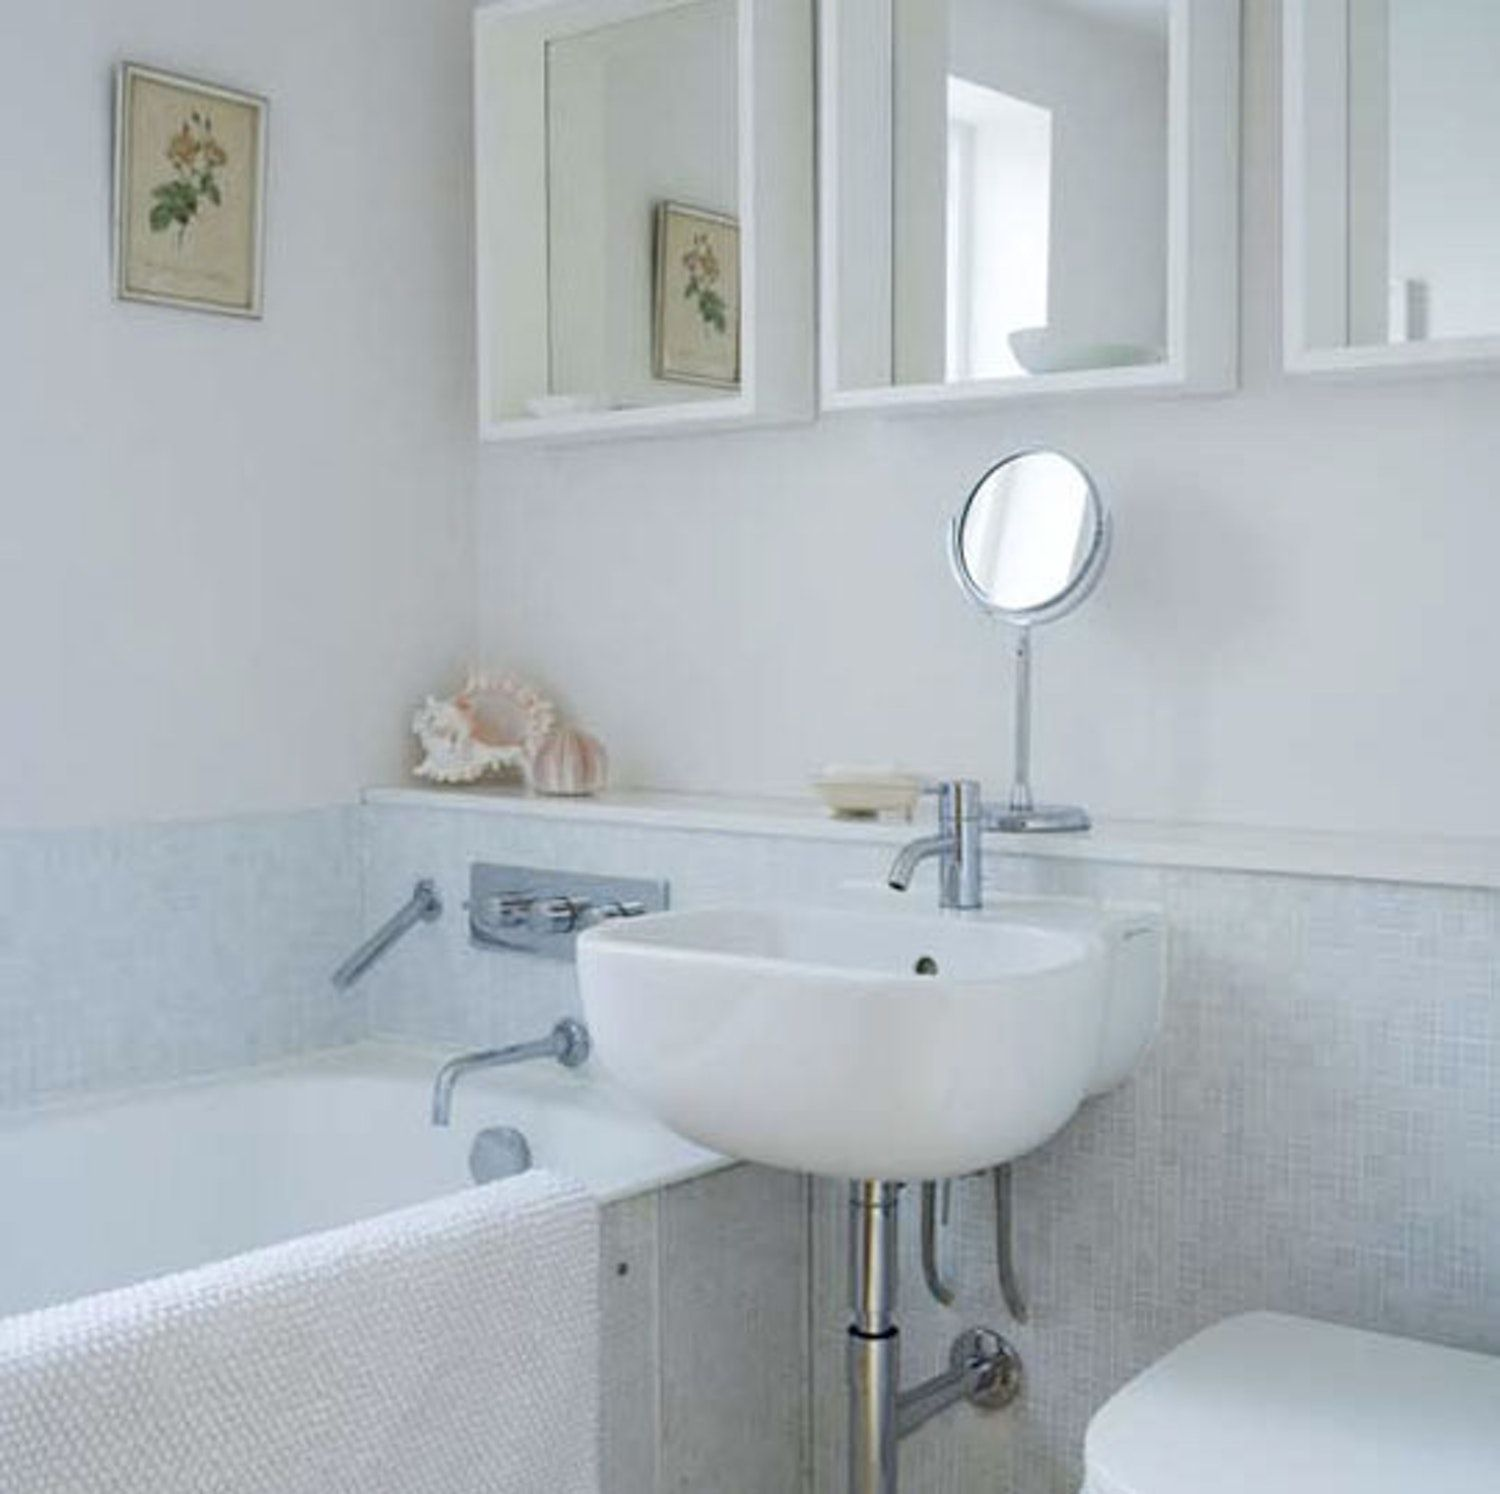 Just Got a Little Space? These Tiny Home Bathroom Designs Will ...